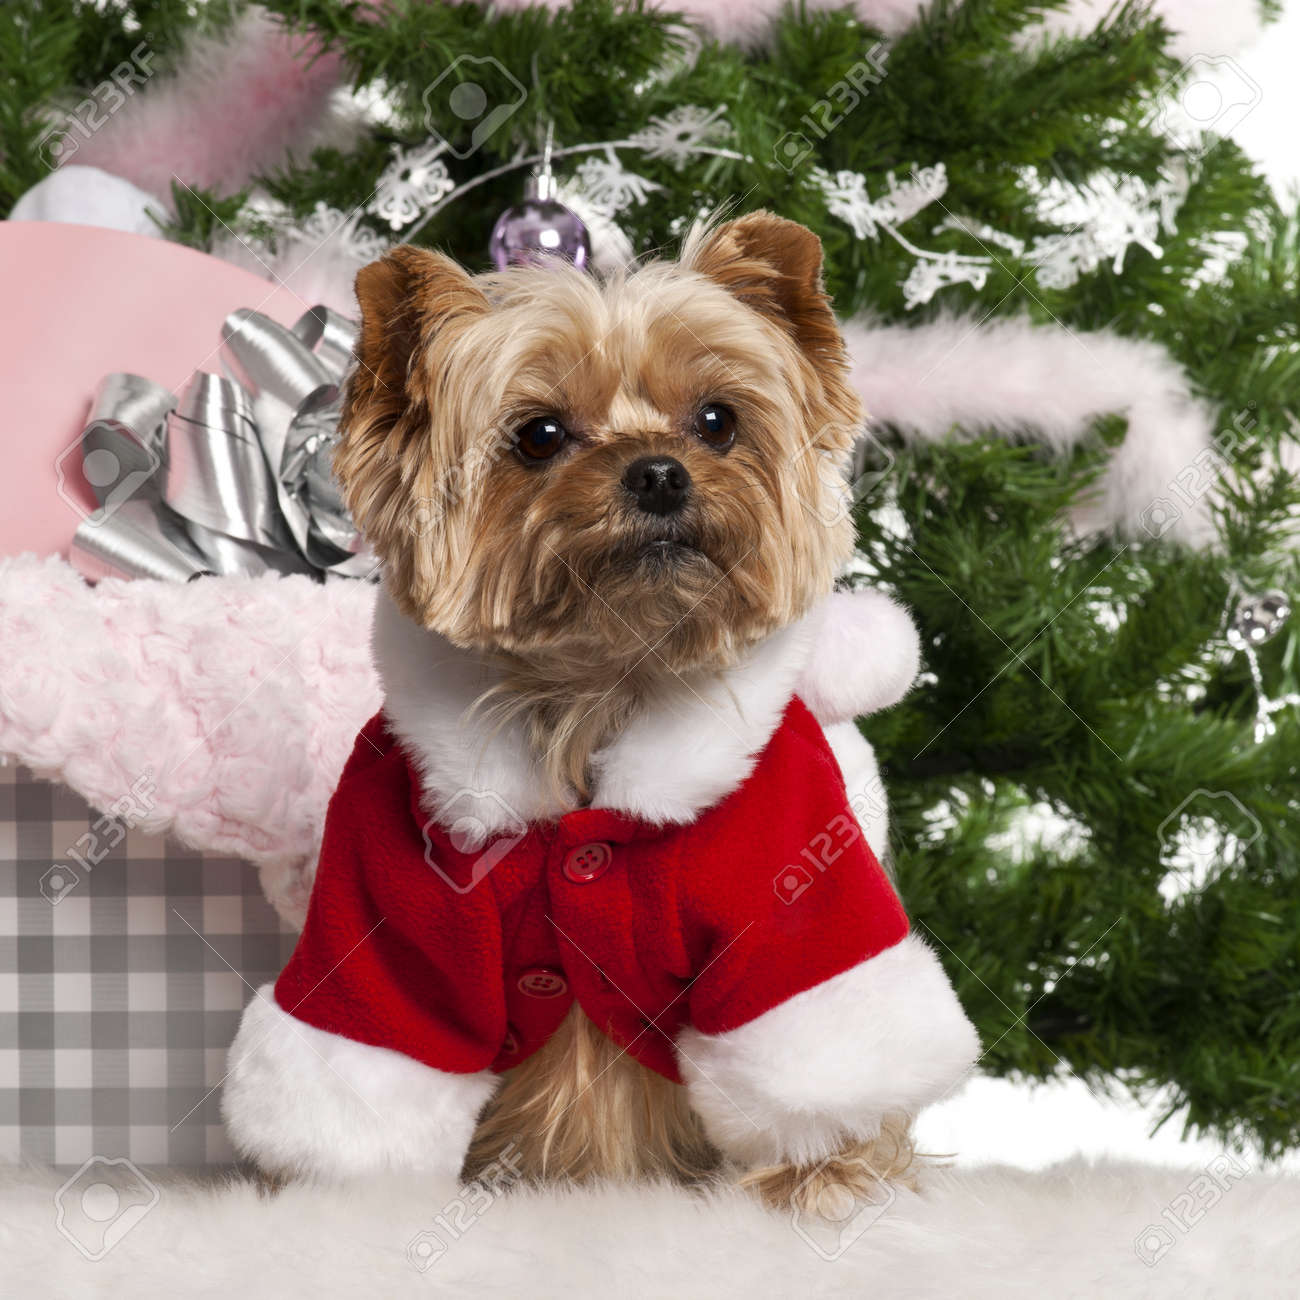 Yorkshire Terrier 7 Years Old Wearing Santa Outfit With Christmas